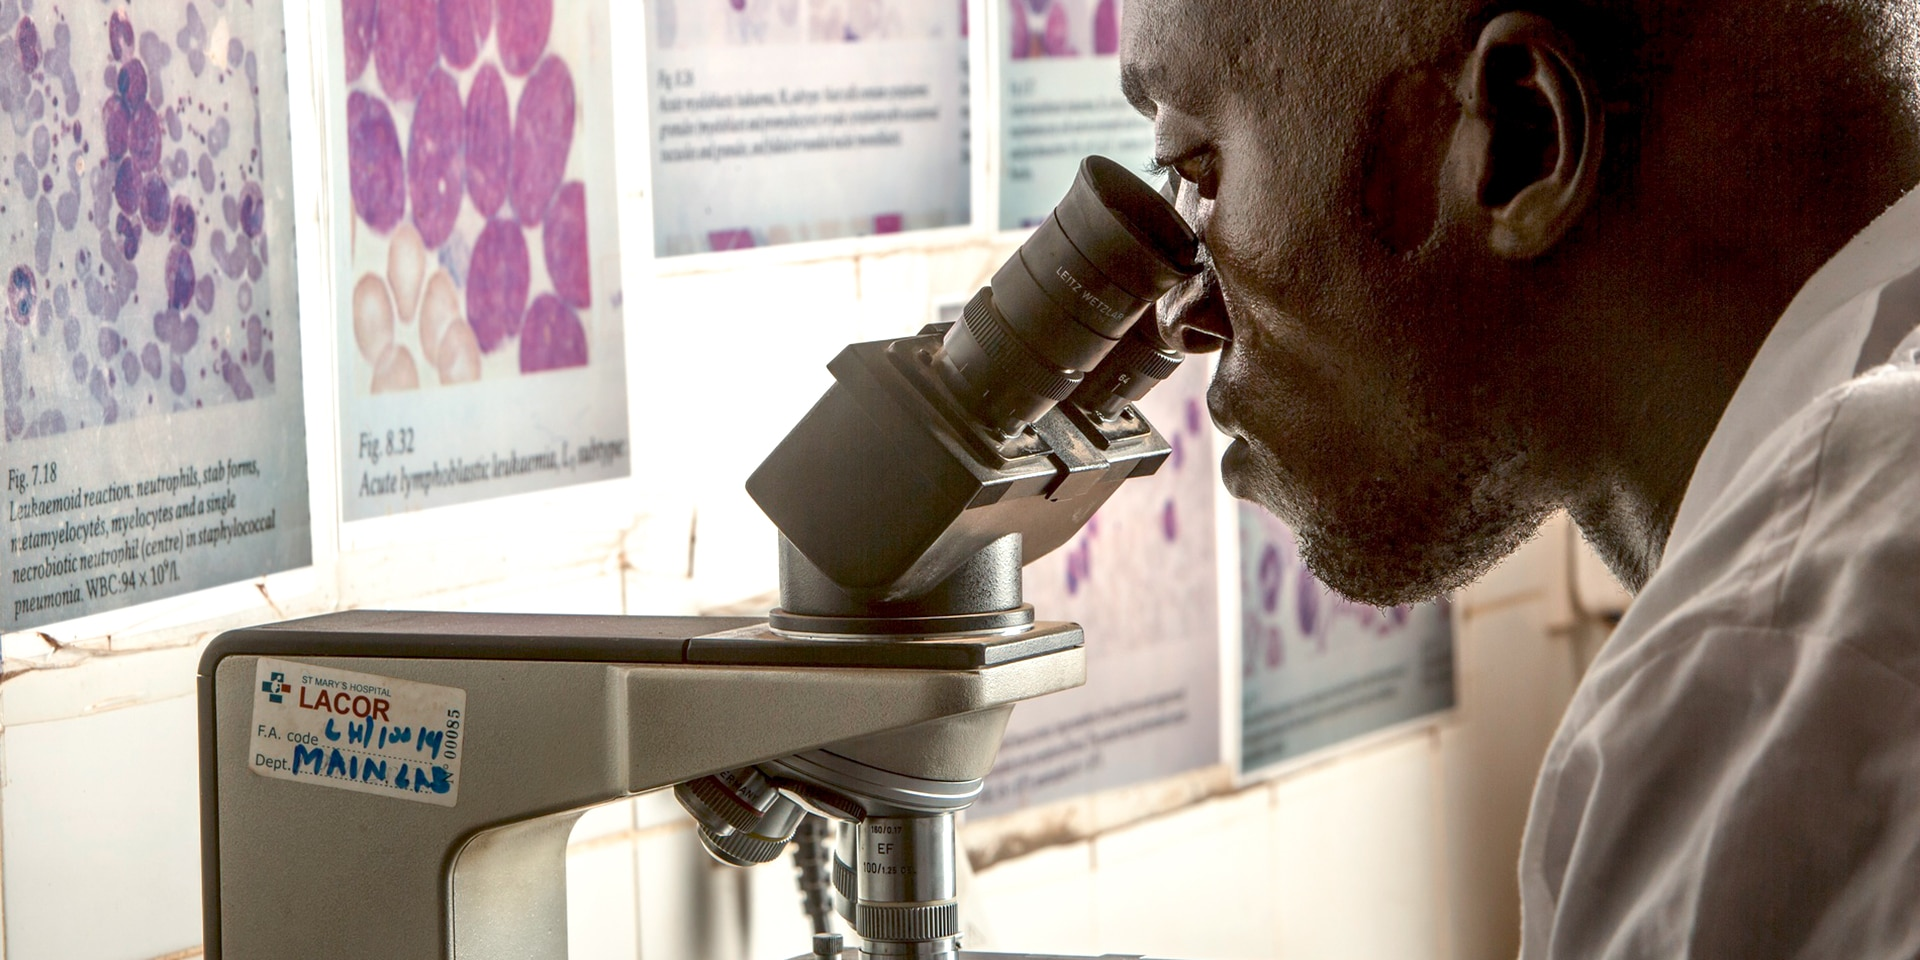 An employee in a hospital looks through a microscope.